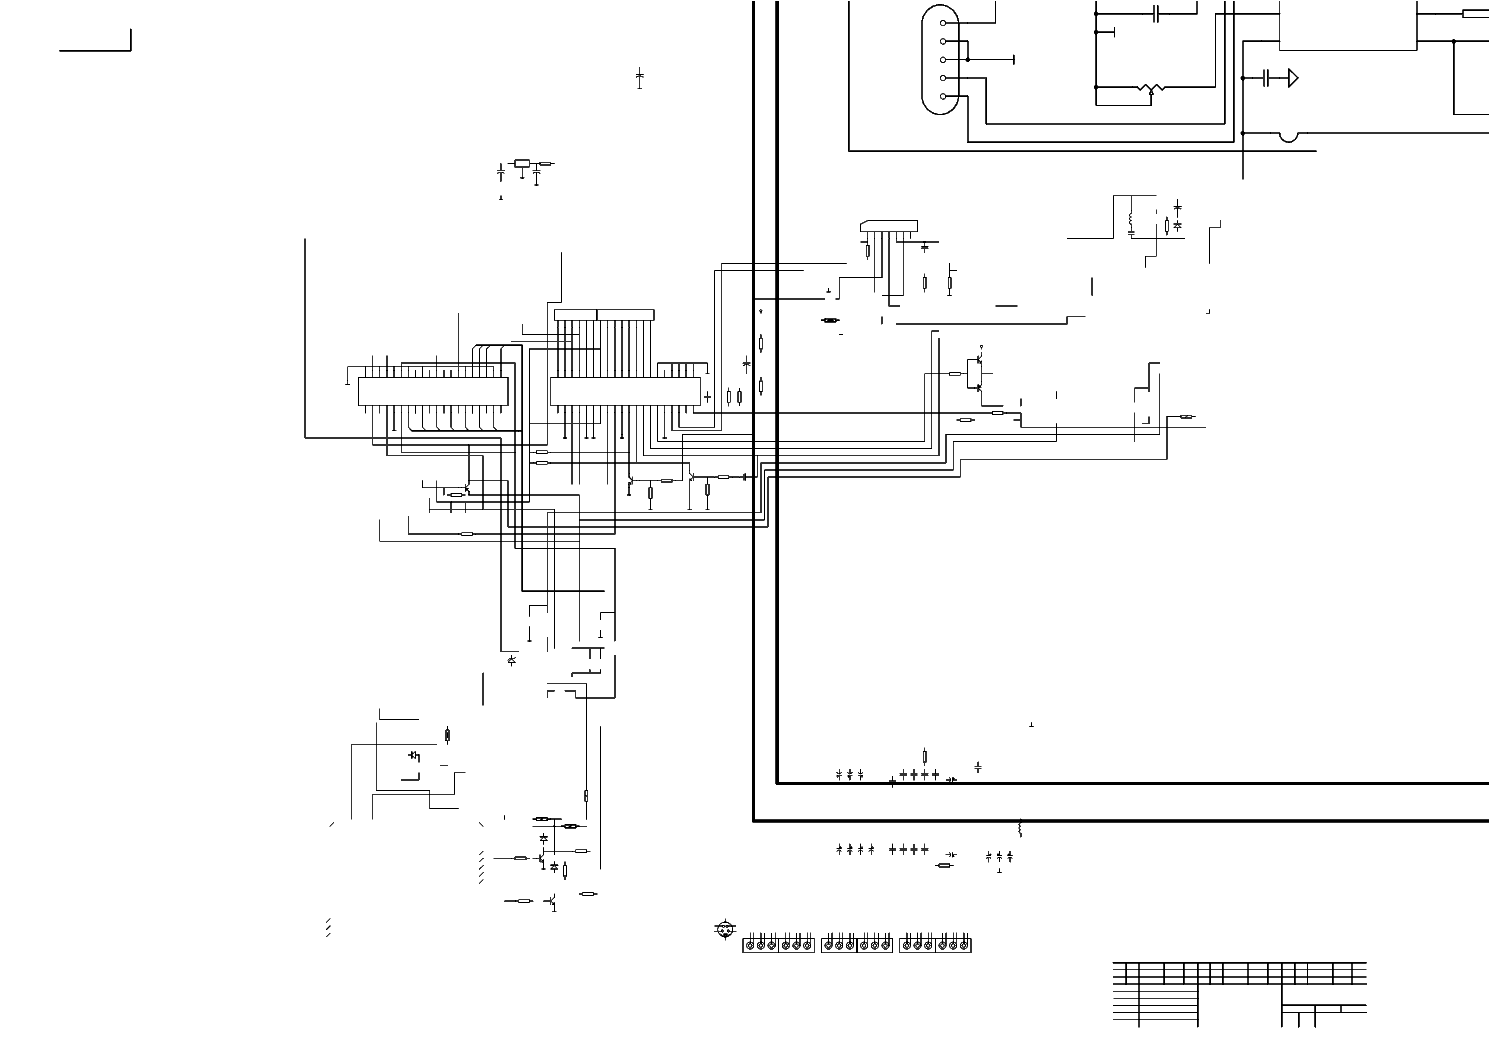 Haier Tv 29fa Circuit Diagram Service Manual Free Download